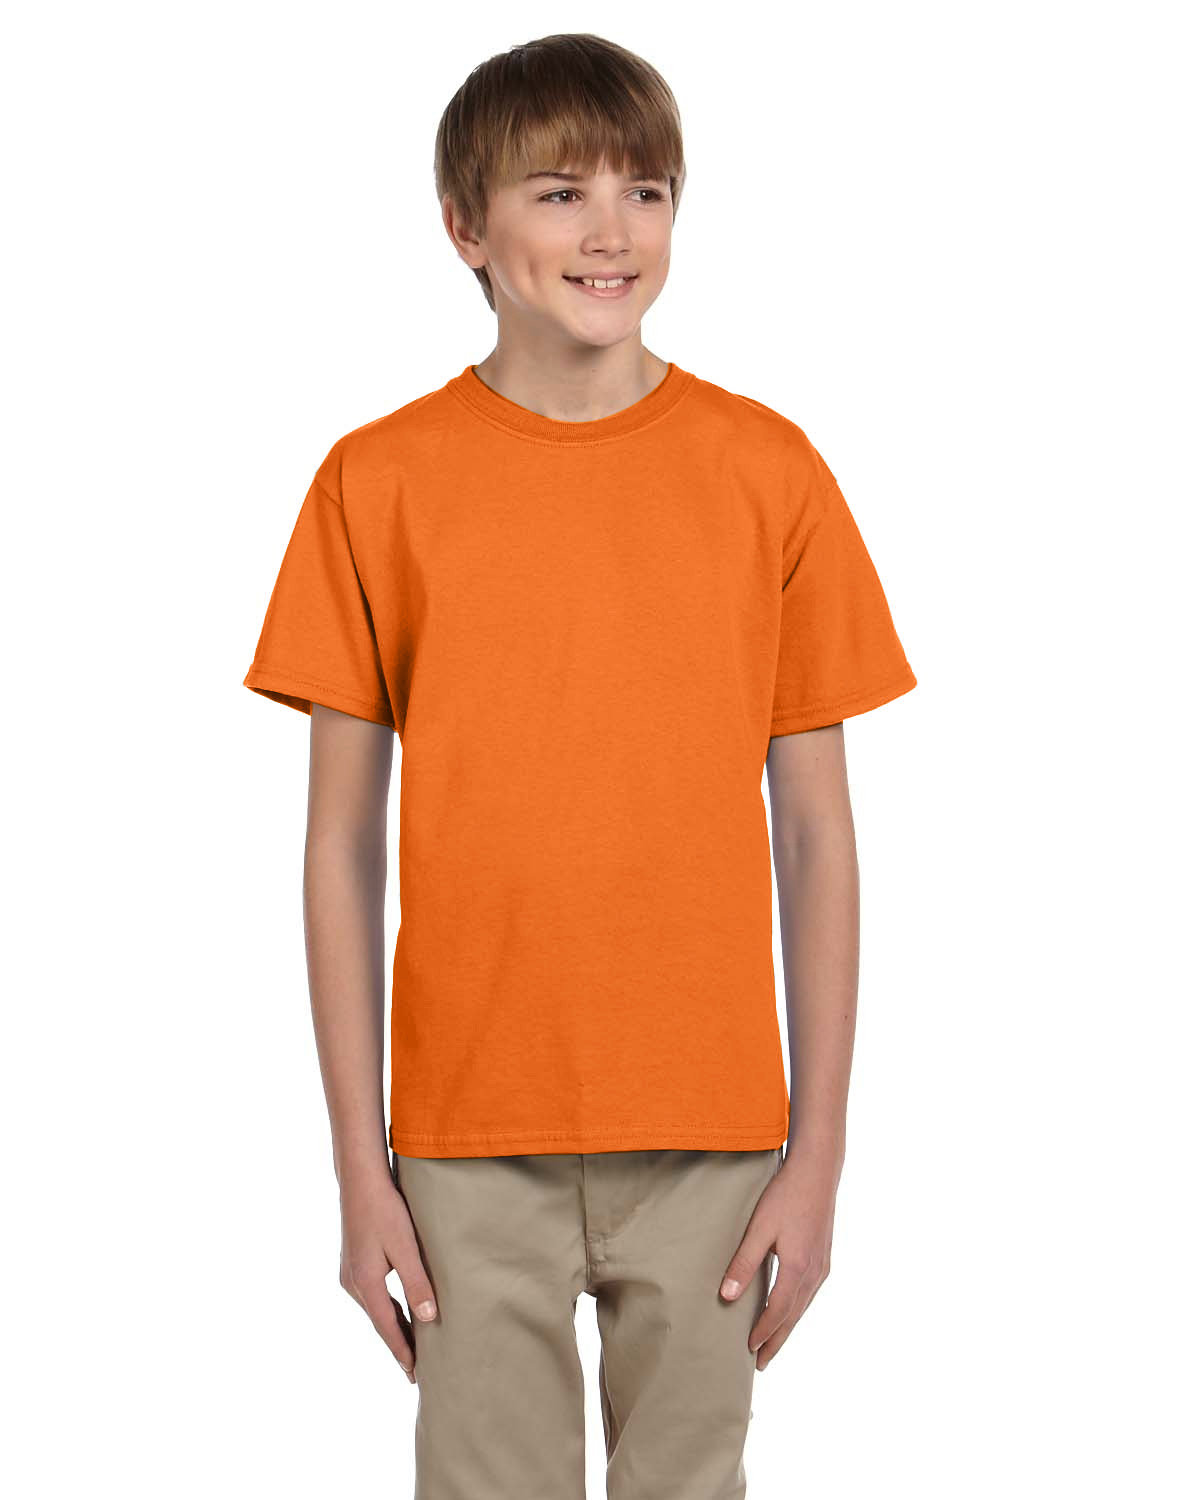 Fruit of the Loom Youth HD Cotton™ T-Shirt SAFETY ORANGE